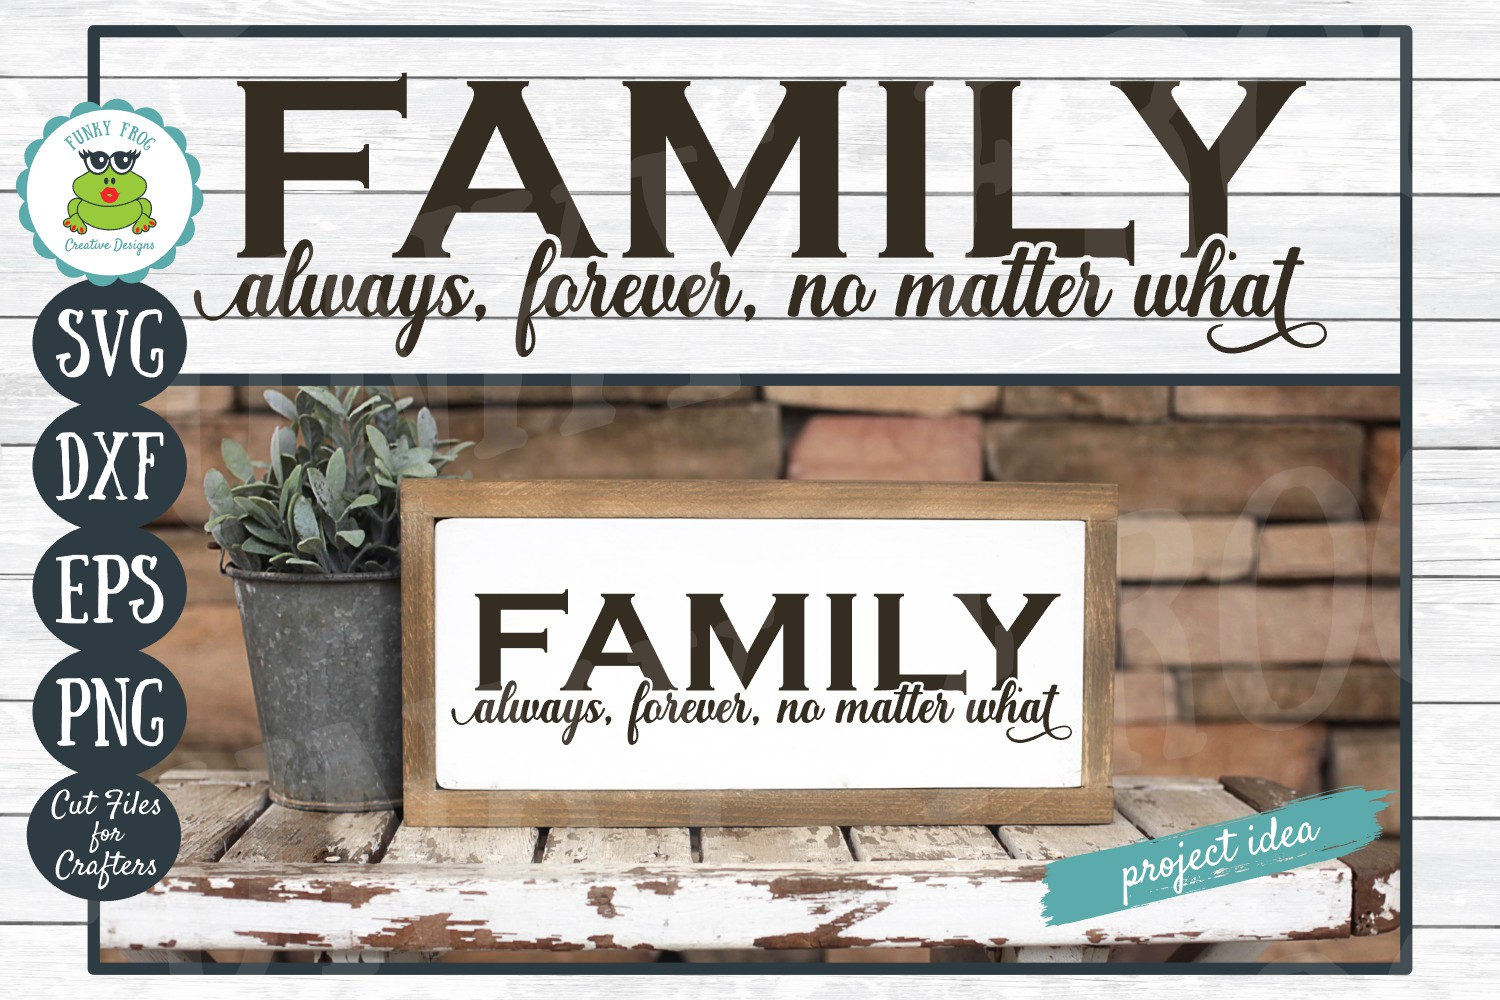 Family Always, Forever, No Matter What - Inspirational SVG example image 1